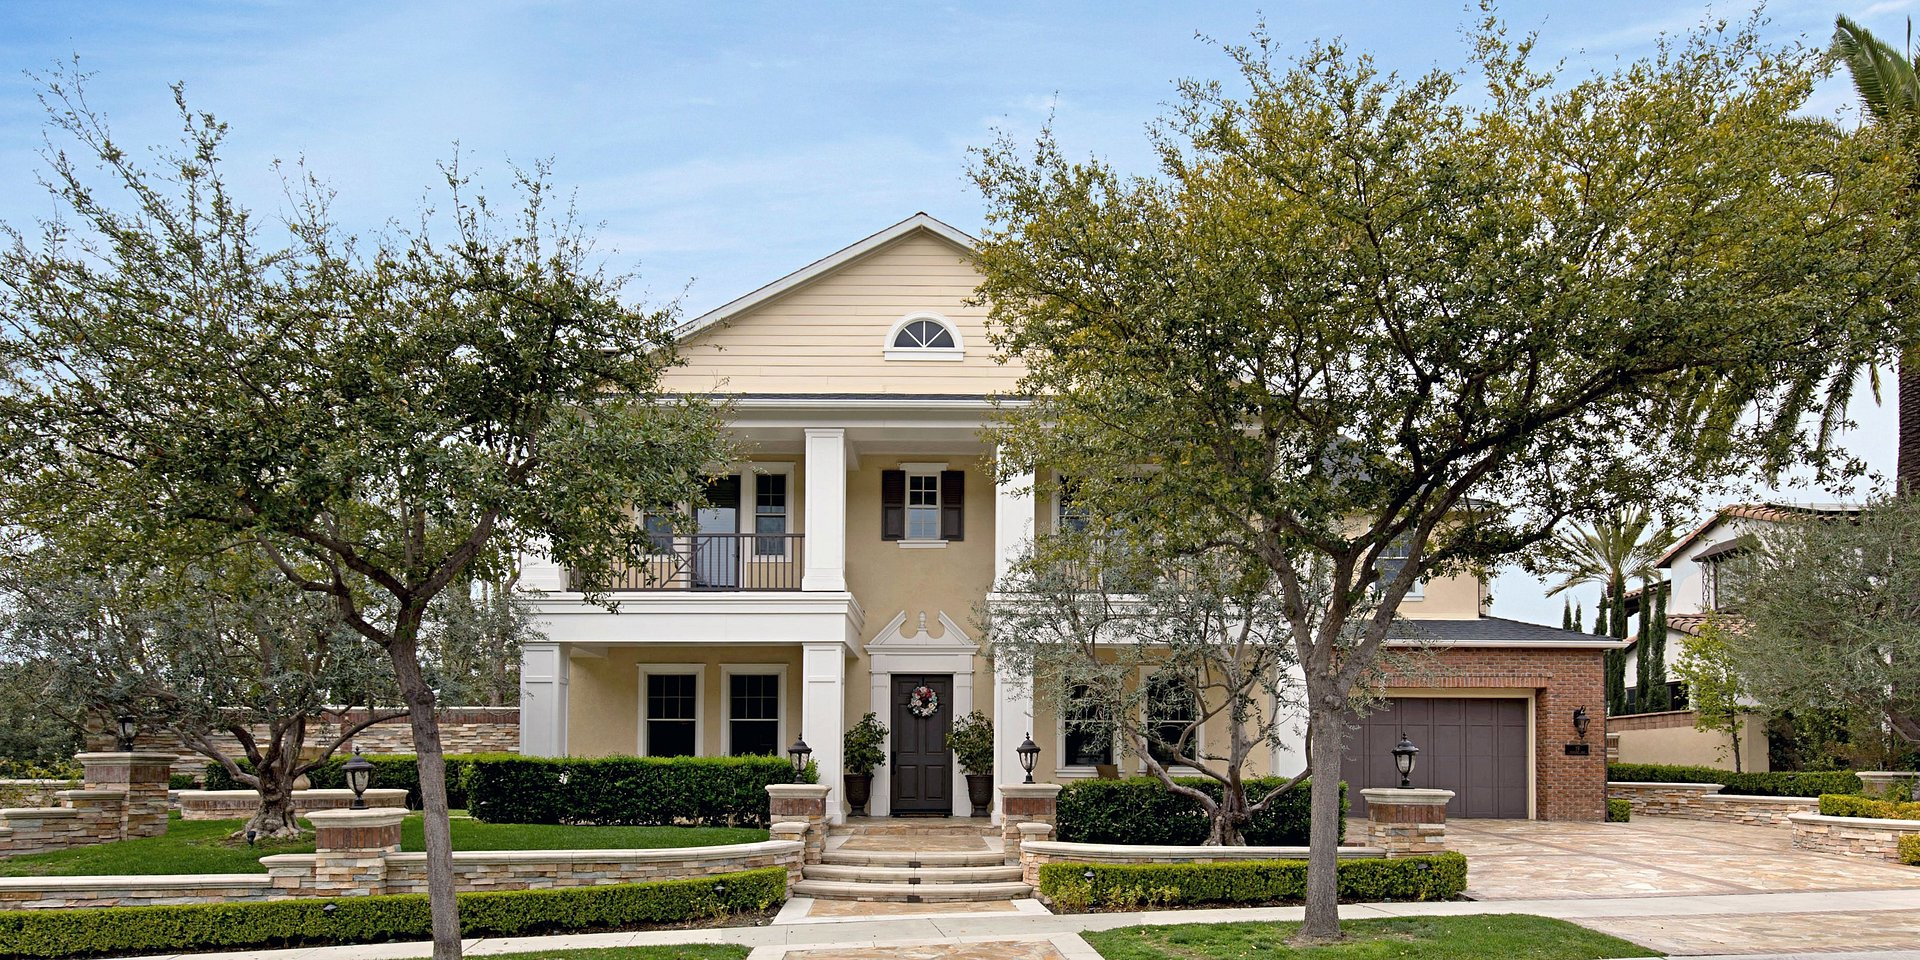 Coldwell Banker Realty Lists a Ladera Ranch Property for $2.295 Million